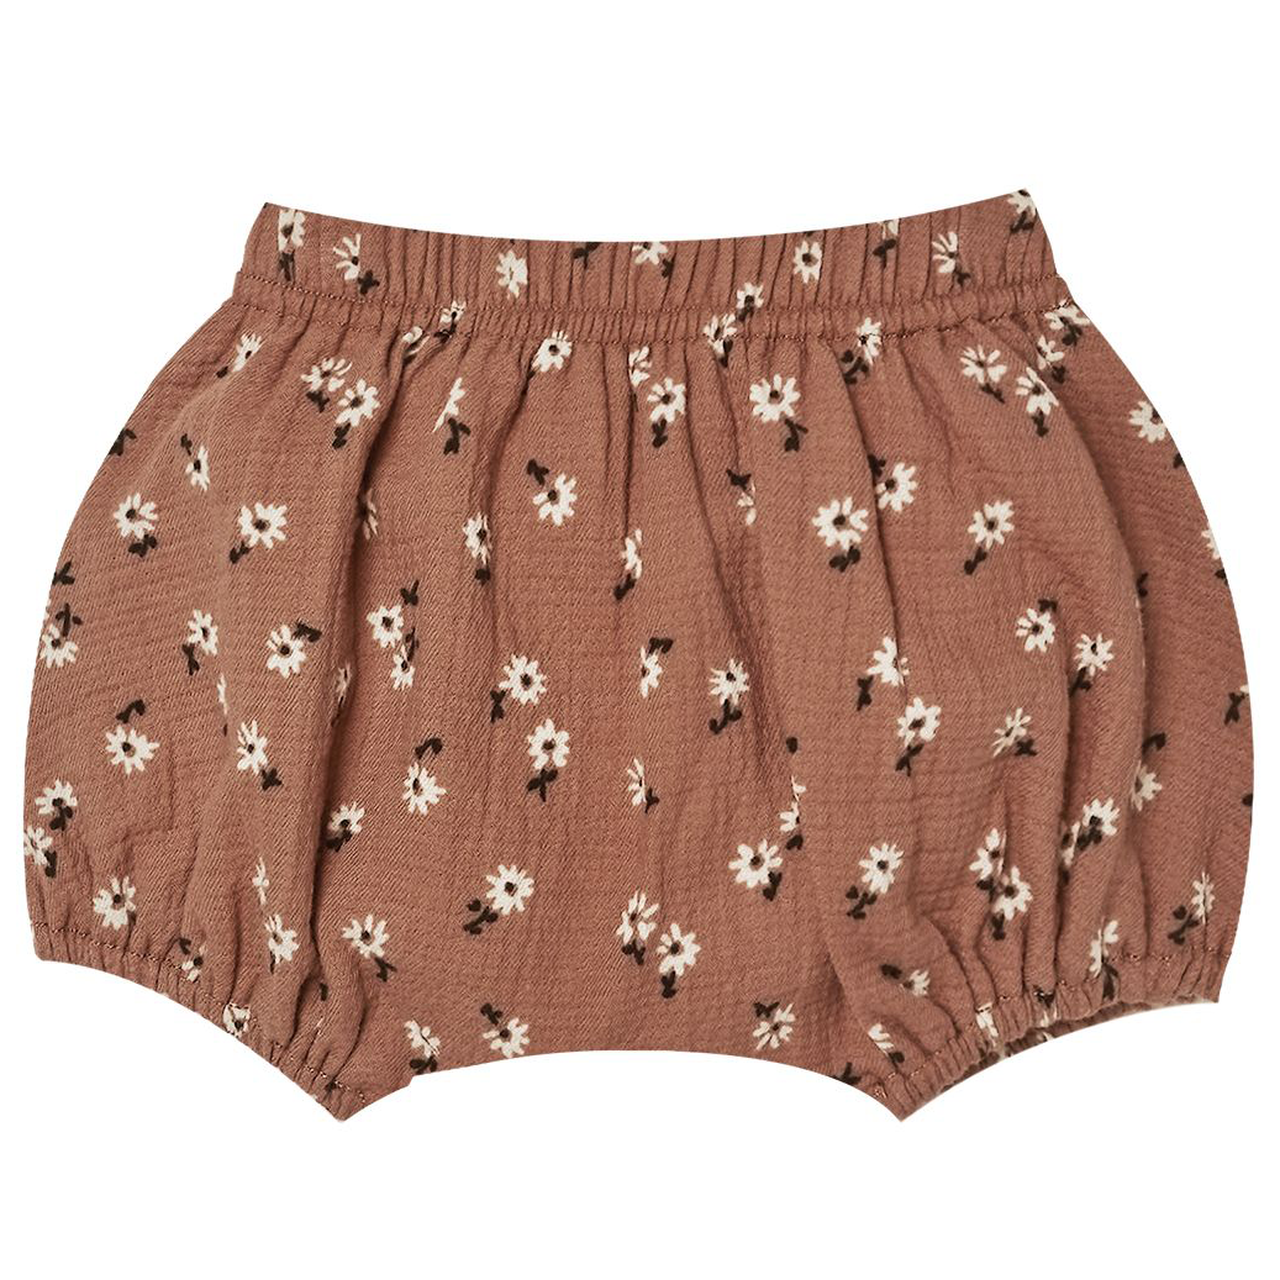 Quincy Mae Quincy Mae Clay Ditsy Organic Woven Bloomers